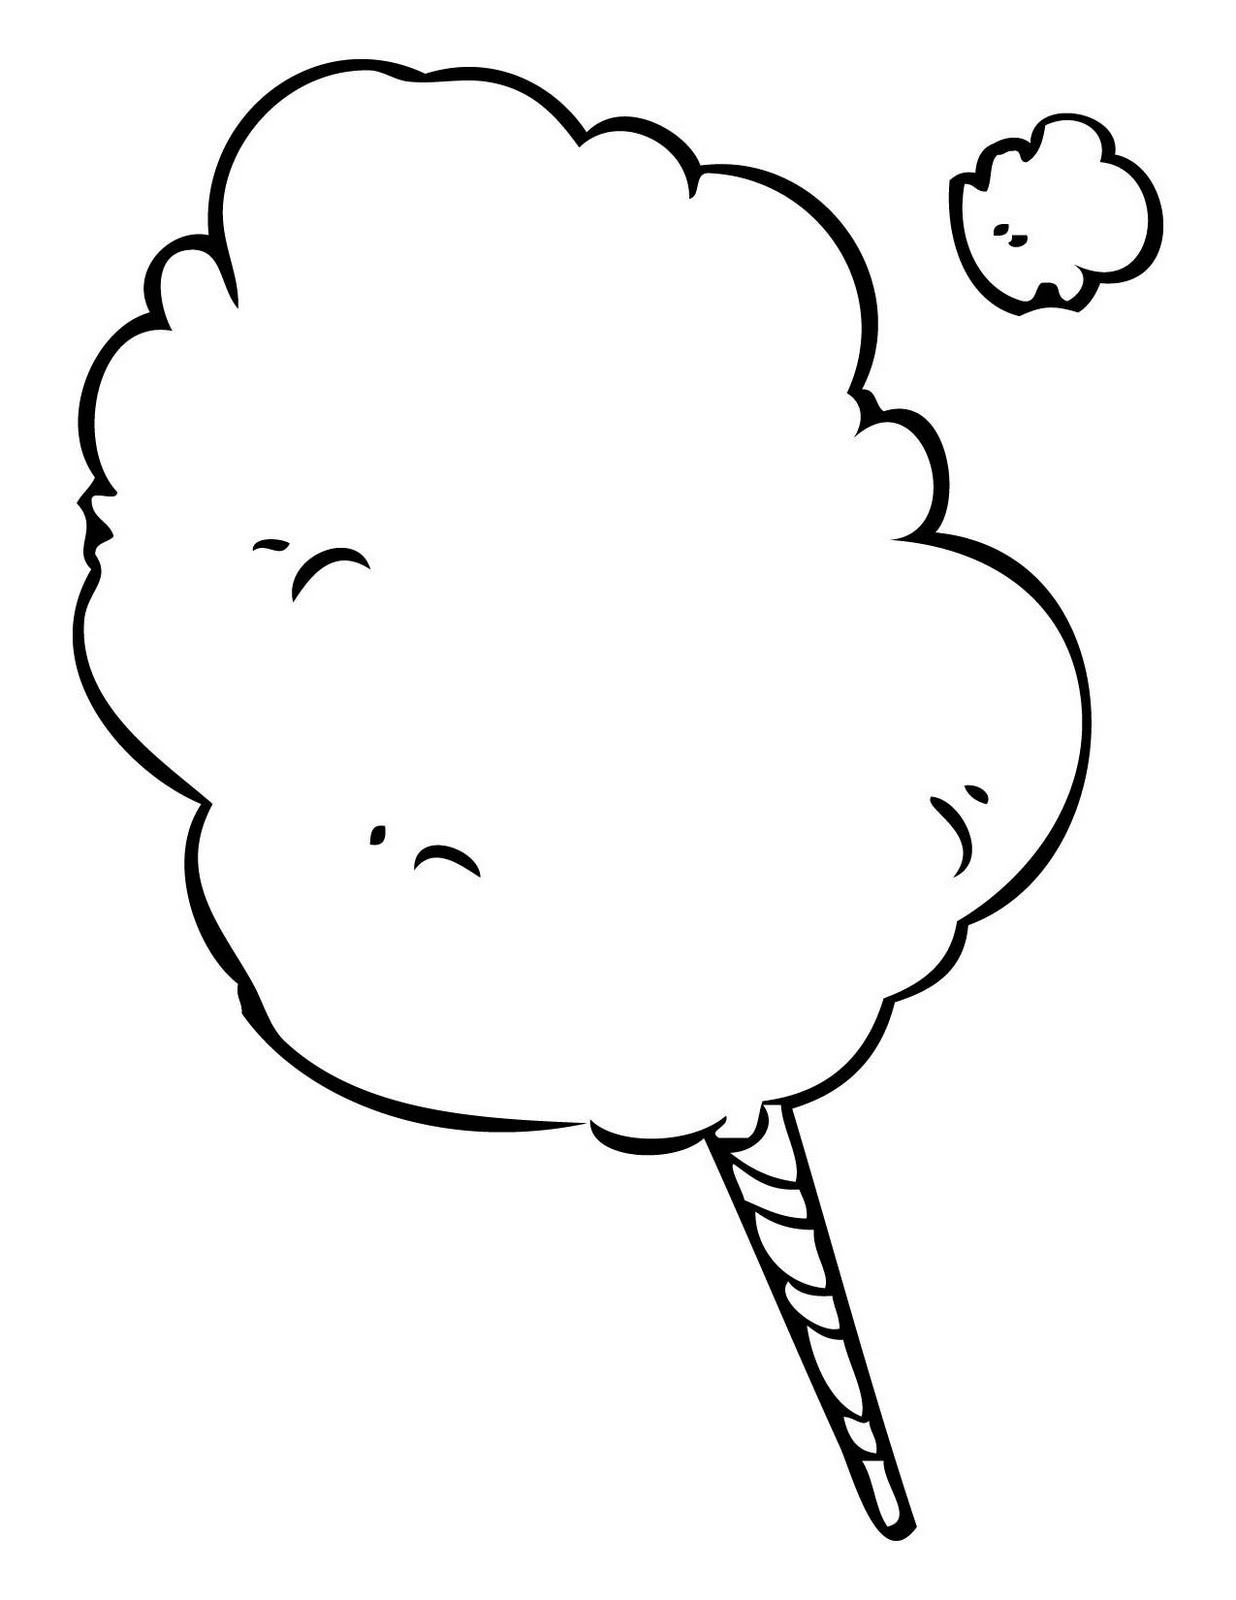 1236x1600 Cotton Candy Clipart Free Download Clip Art On 4